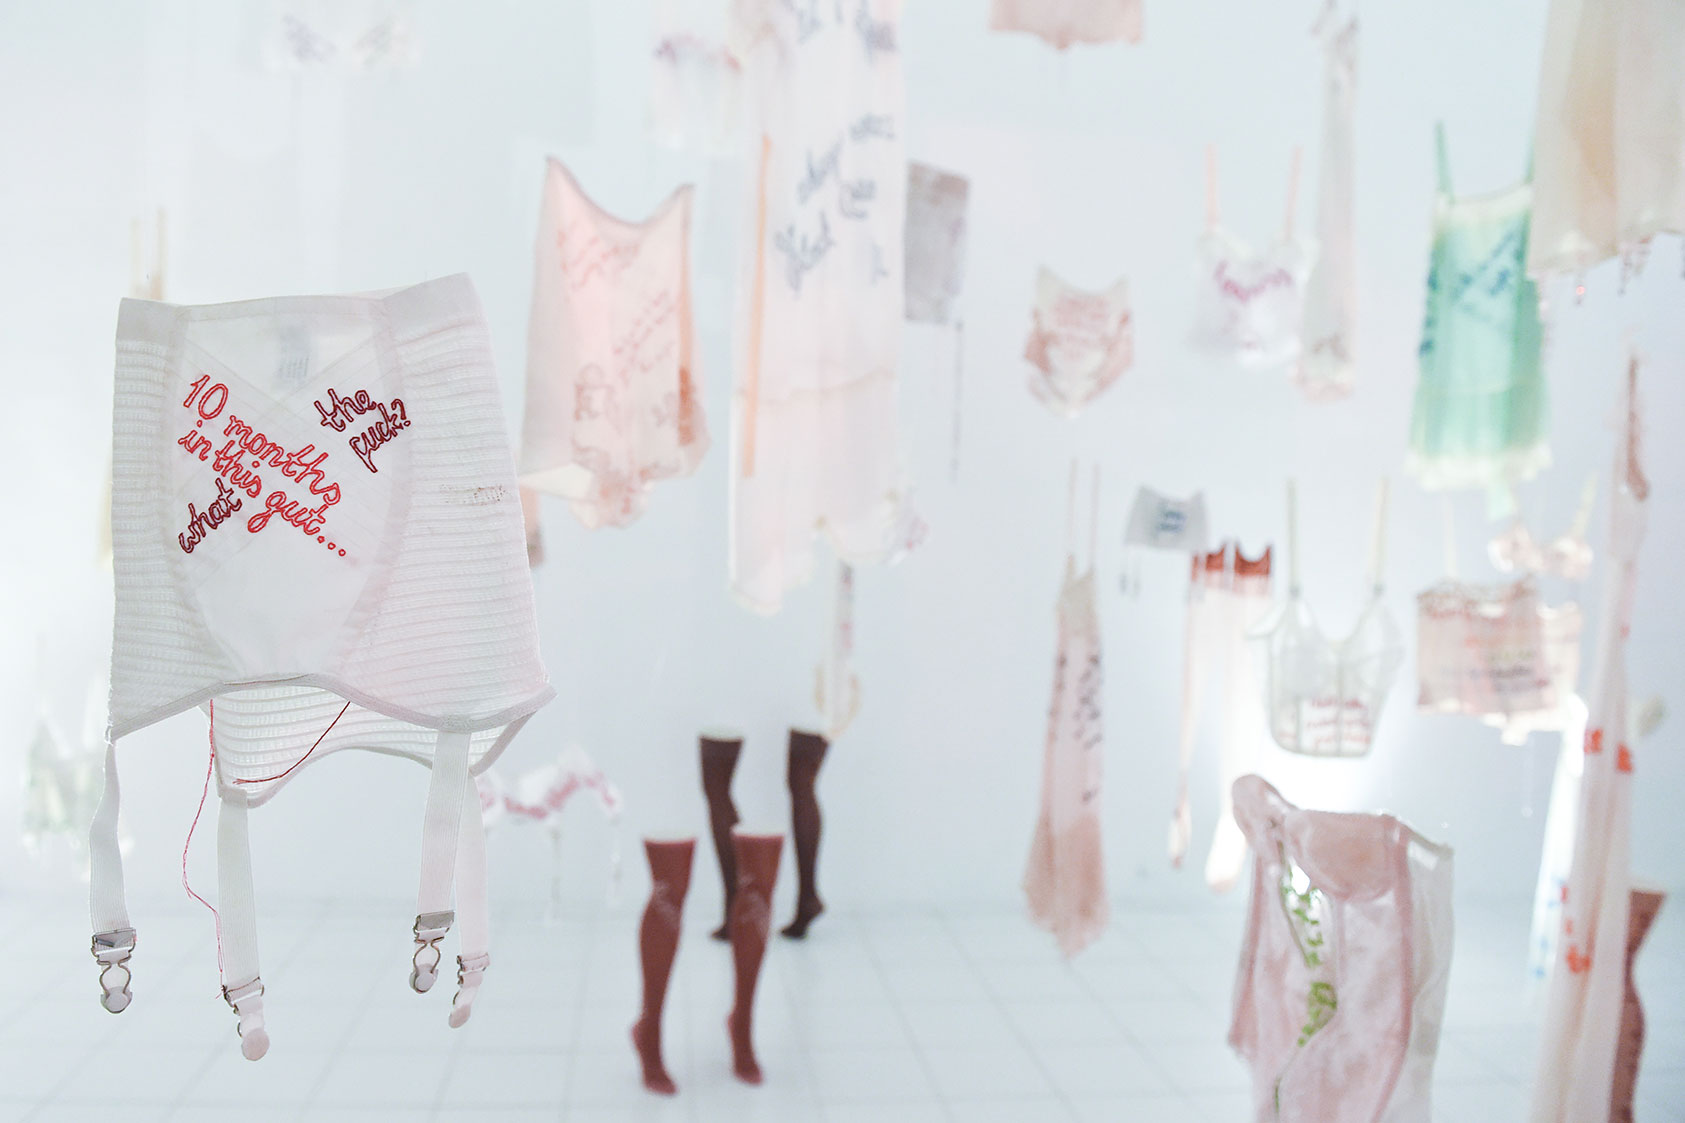 Fiber art installation exhibition of hanging embroidered lingerie